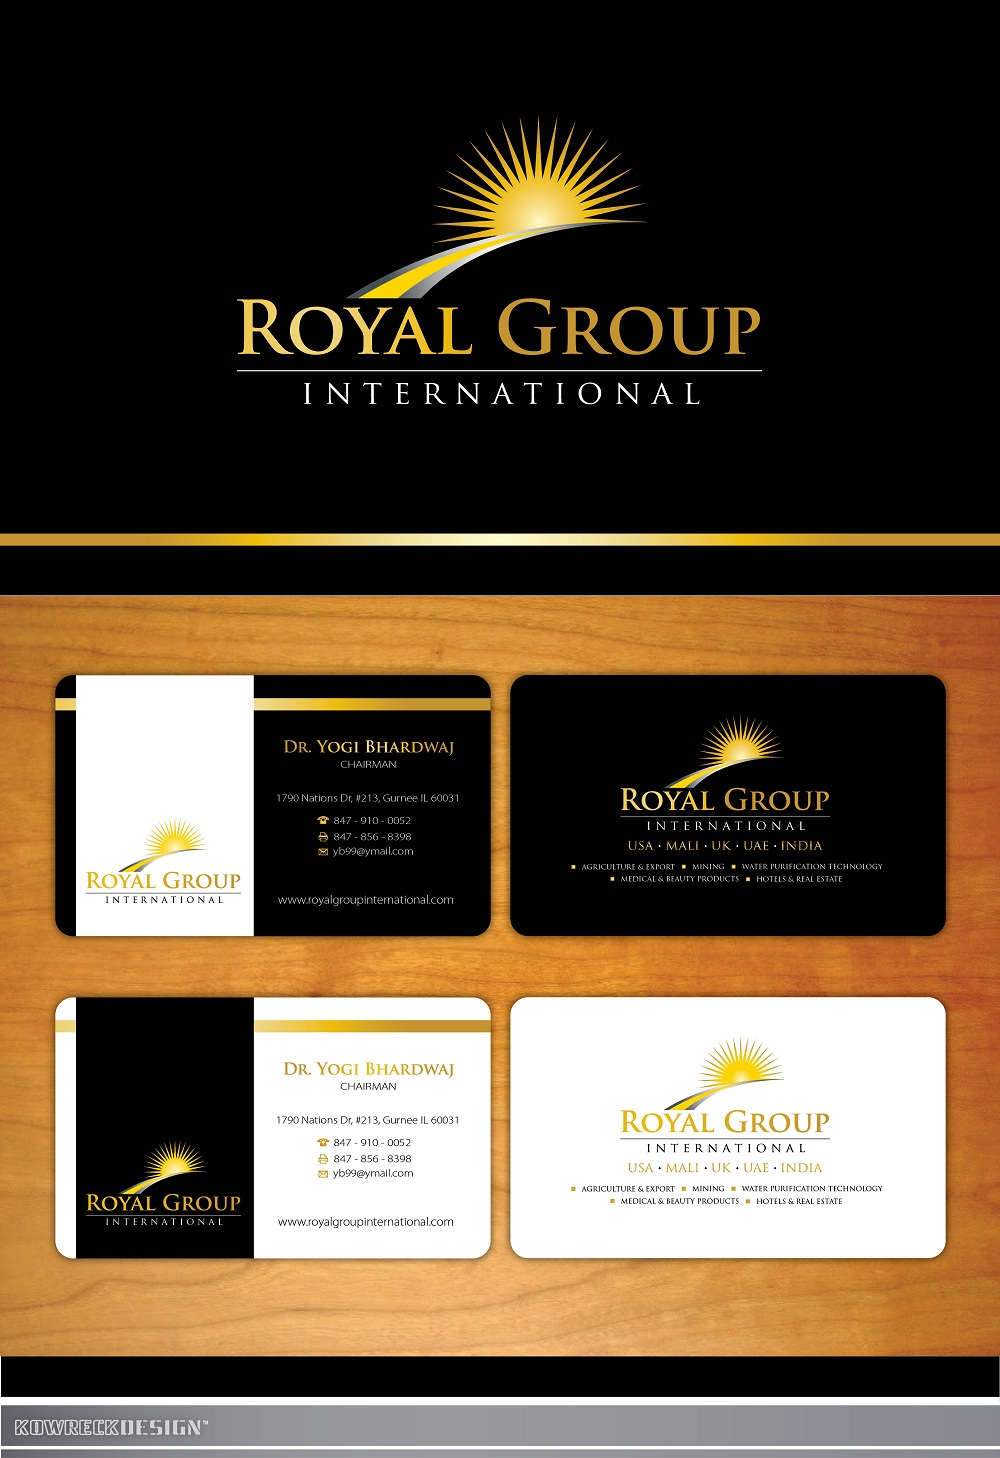 Business Card Design by kowreck - Entry No. 45 in the Business Card Design Contest Royal Group International Business Card Design.